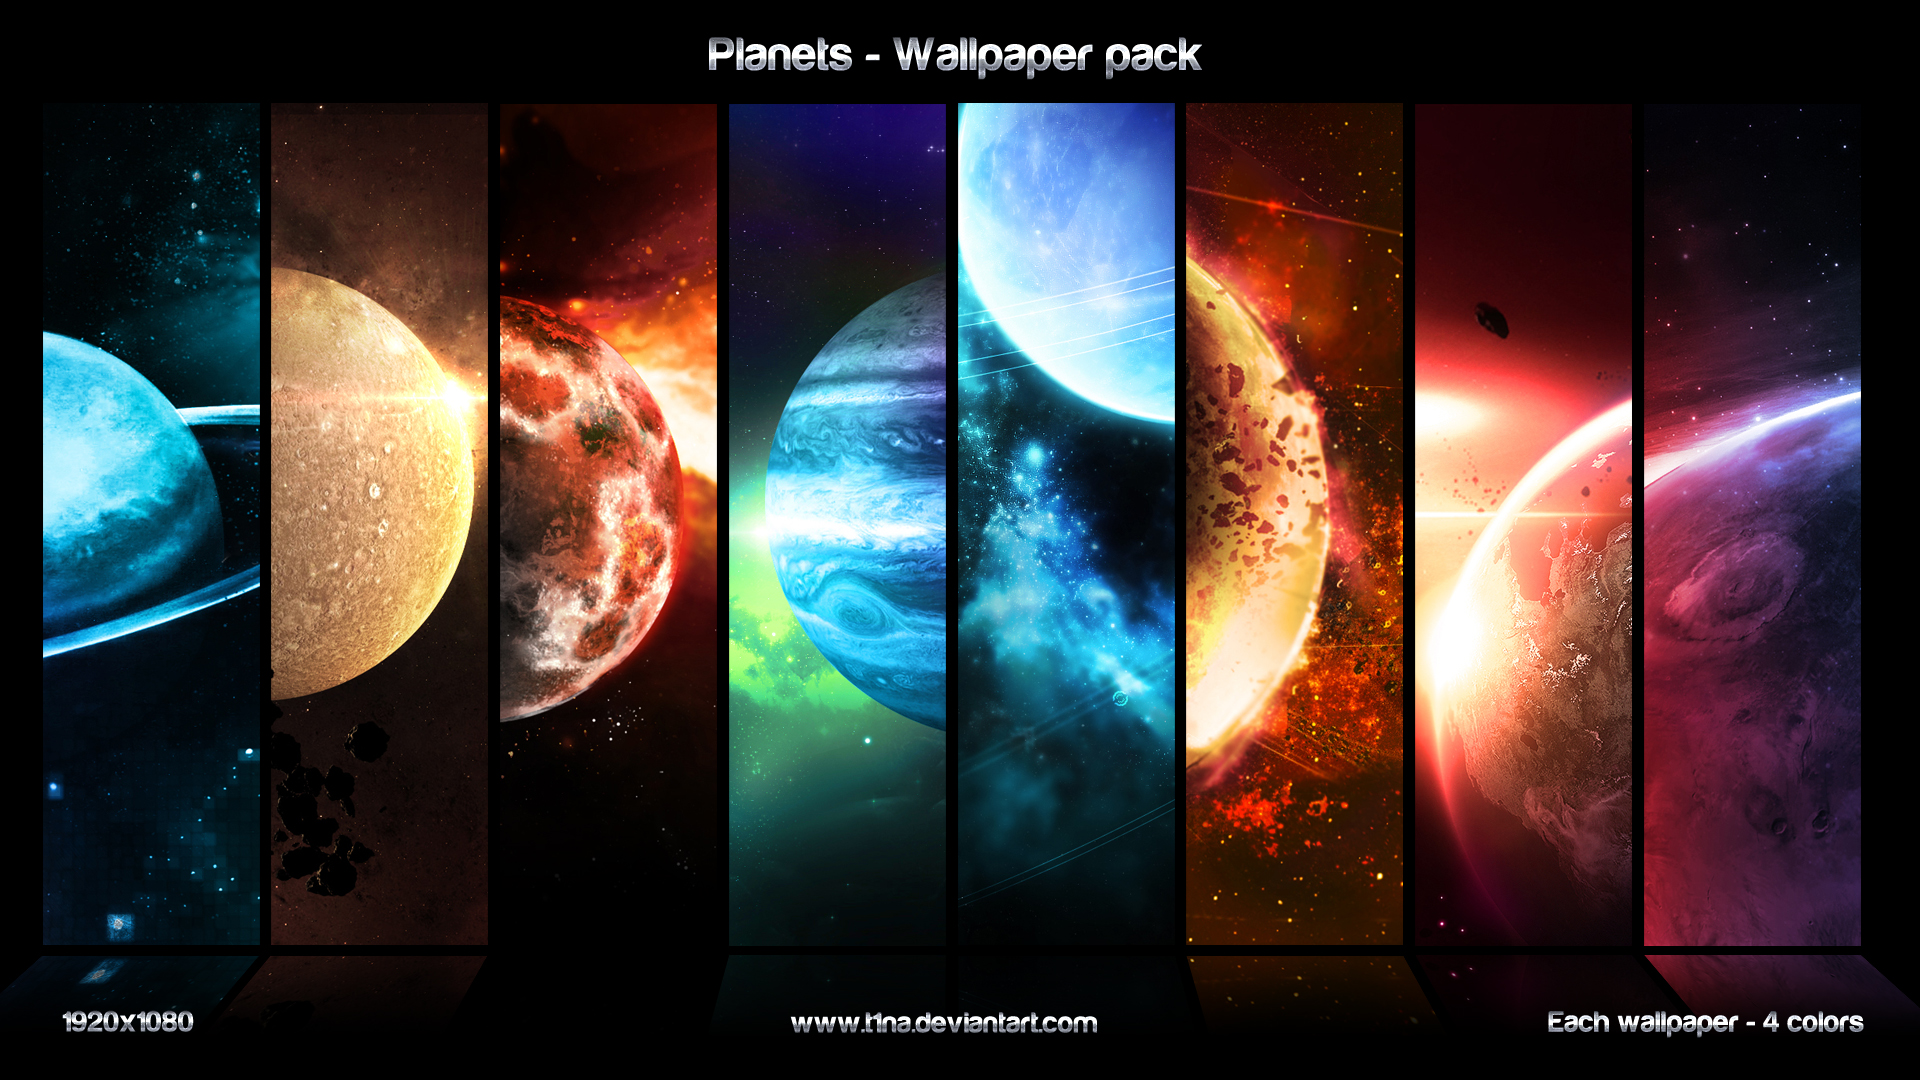 planets wallpaper pack by t1na customization wallpaper hdtv widescreen 1920x1080